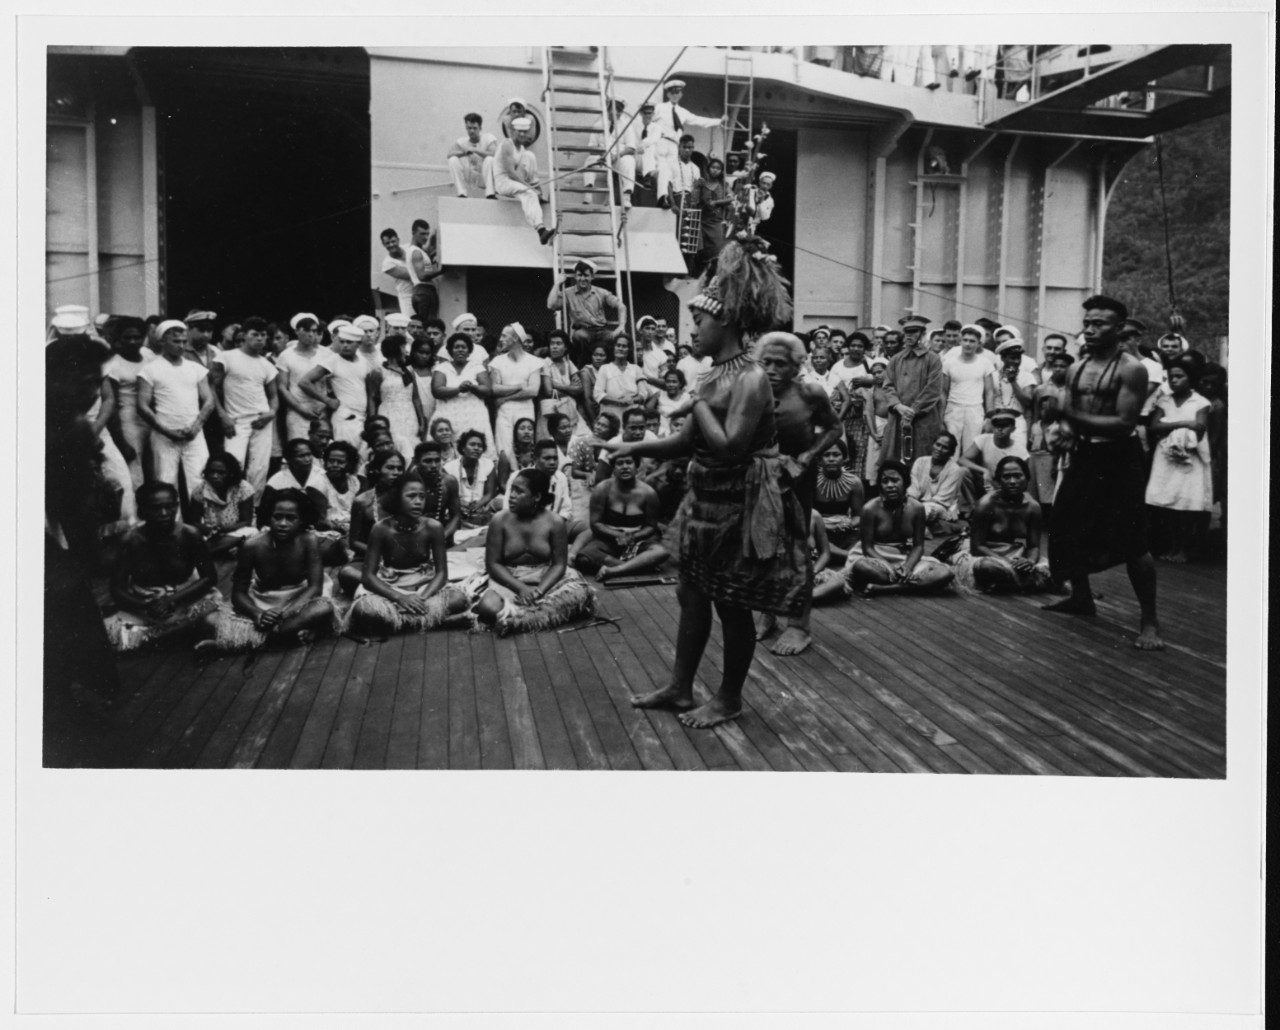 A native dancer welcomes Chicago and her ship's company during the ship's shakedown cruise at Papeete, Tahiti, 1931. (Courtesy of Wiley H. Smith, Naval History and Heritage Command Photograph NH 93460)